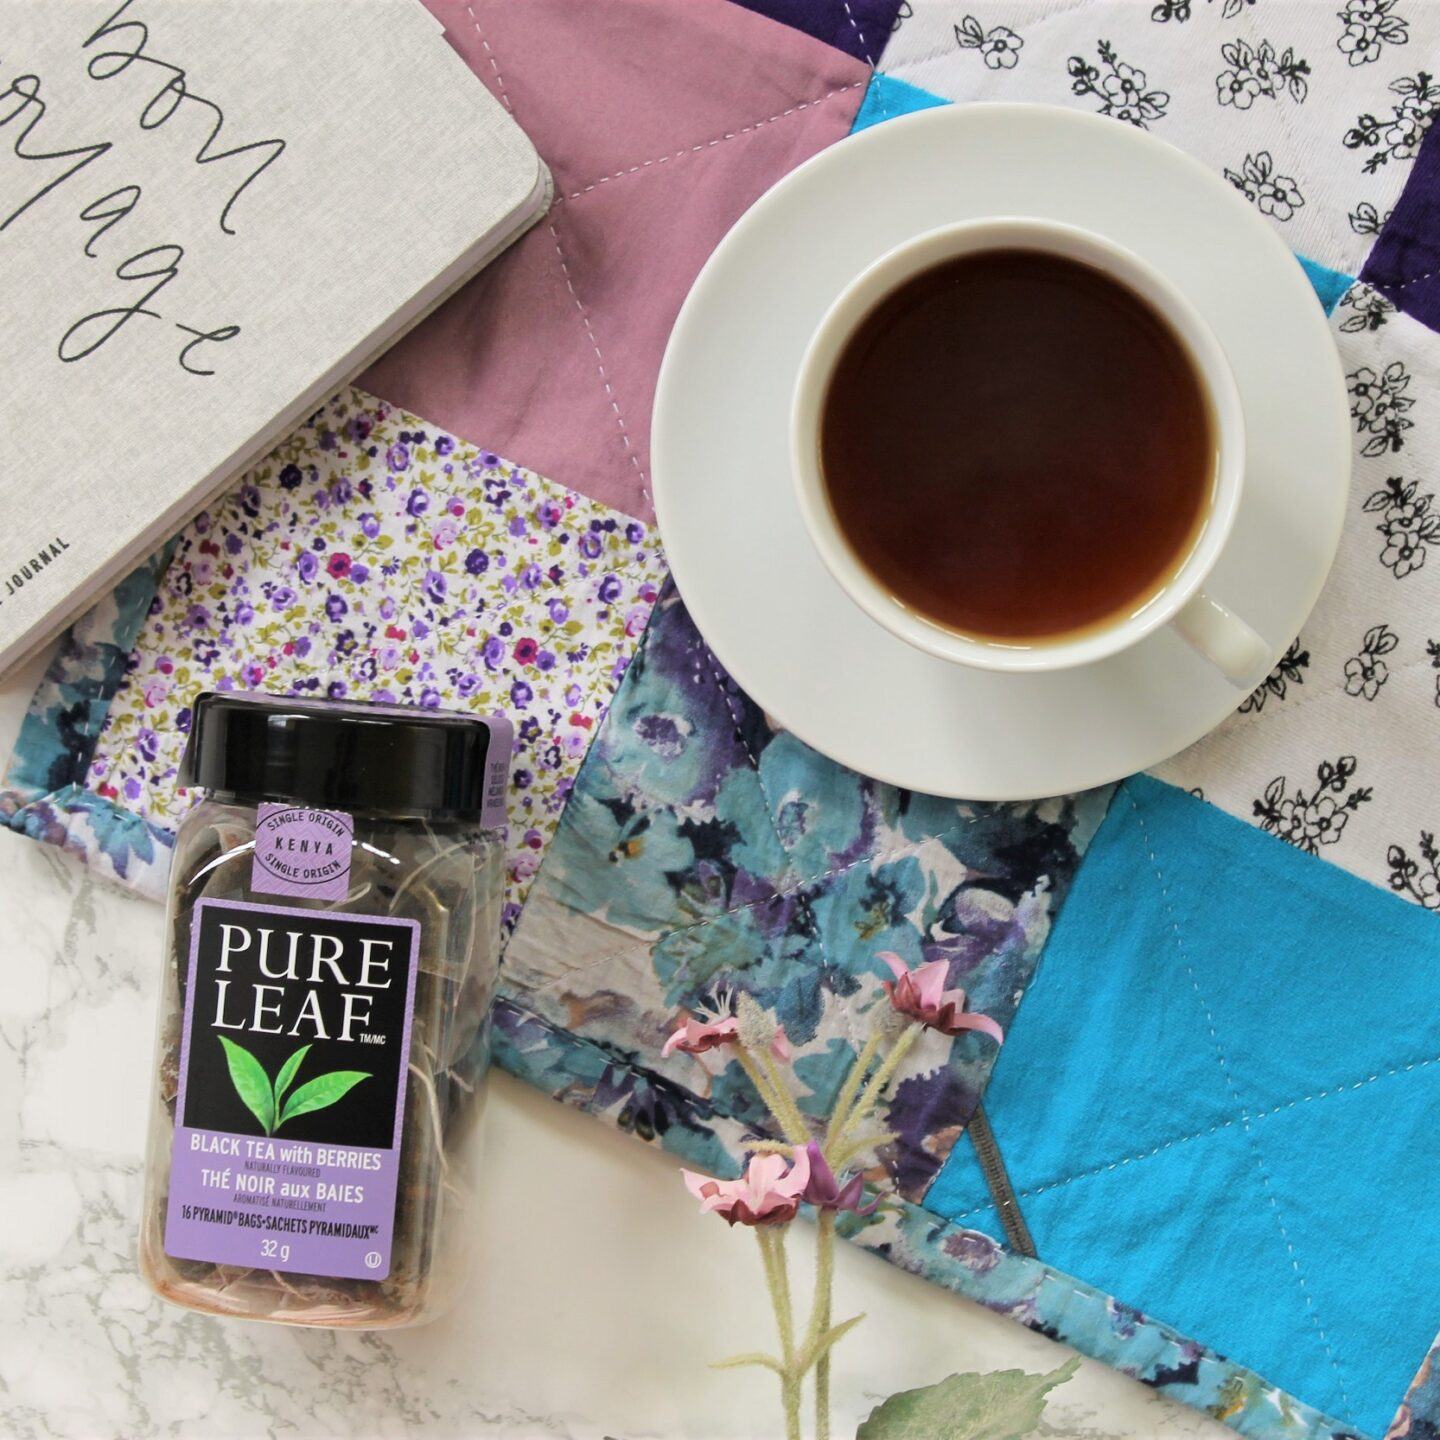 Pure Leaf Black Tea with Berries Review